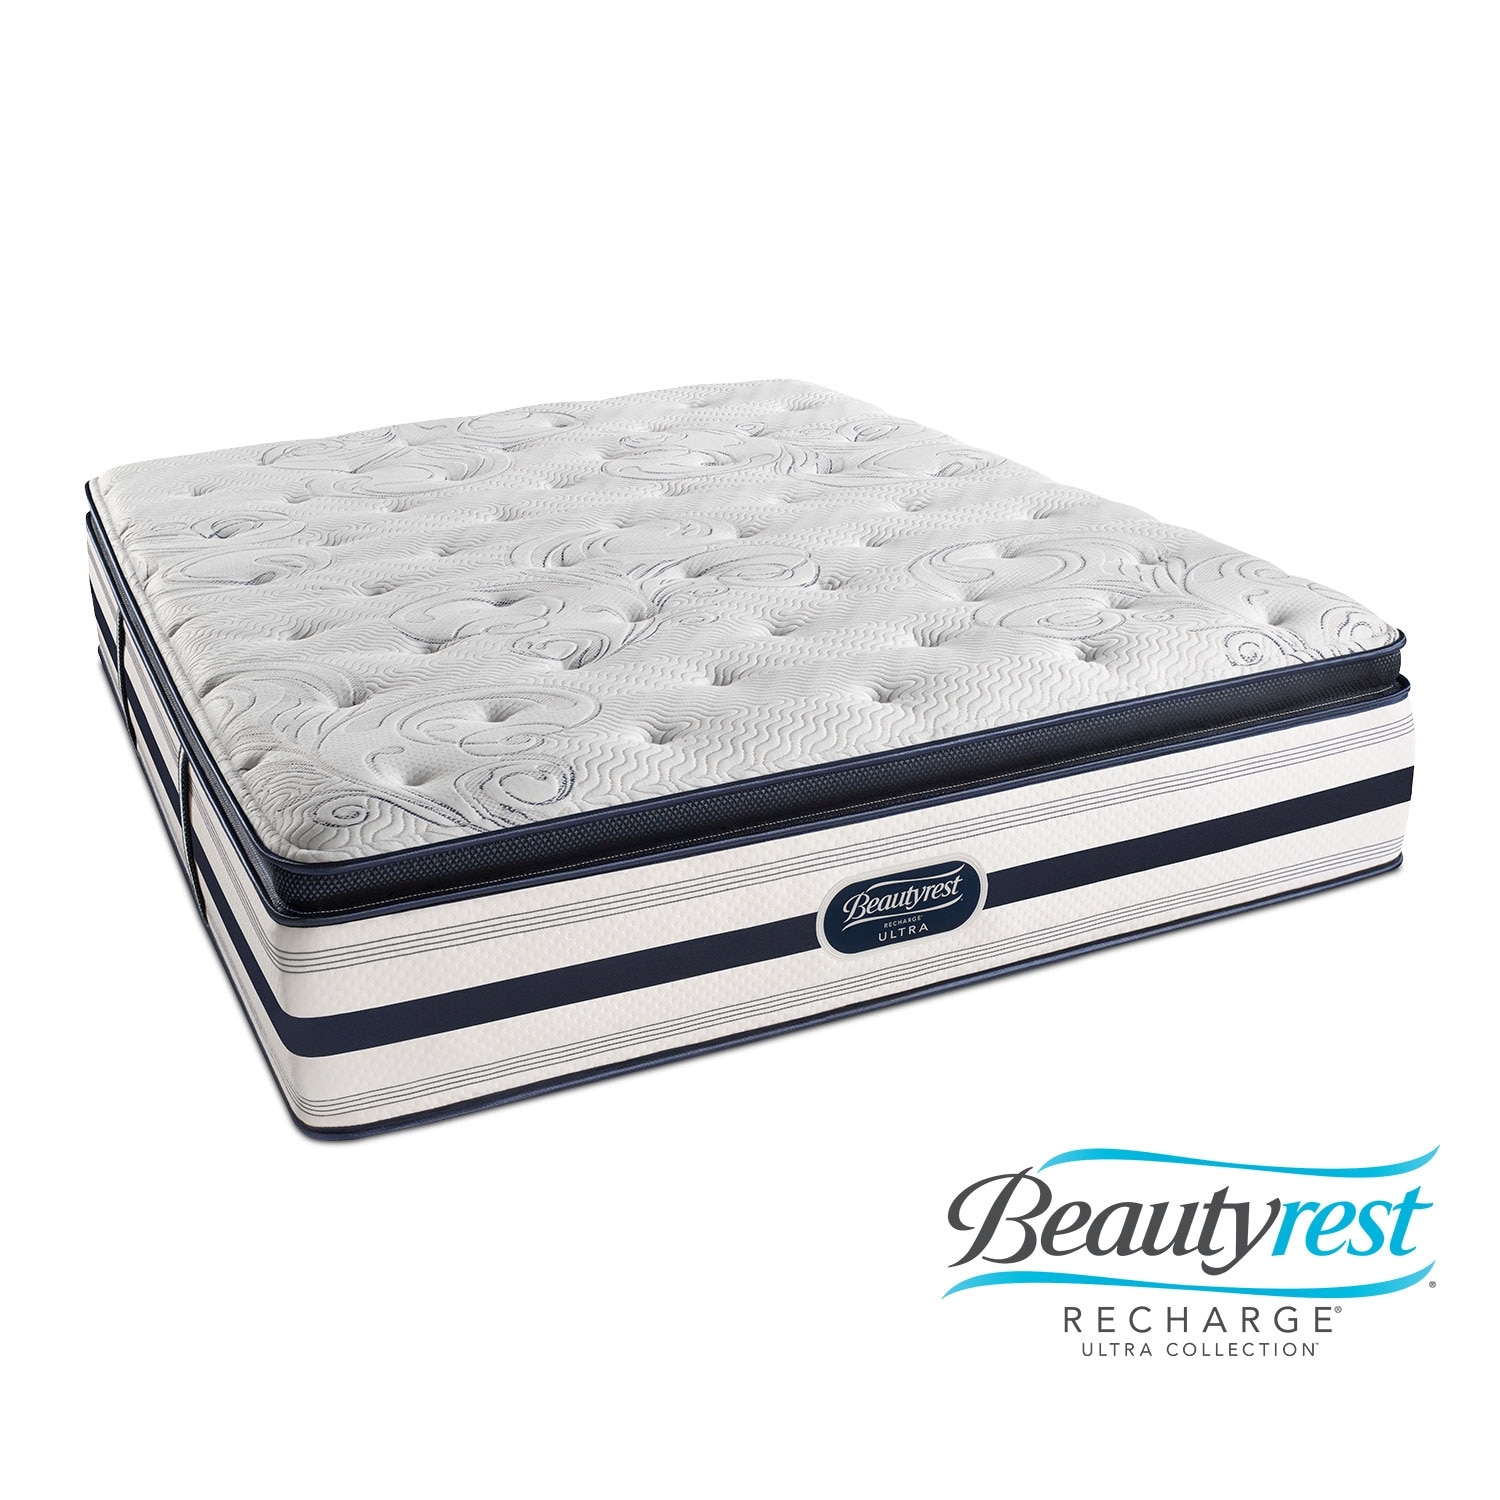 Mattresses and Bedding - Cerise Luxury Firm PT Full Mattress